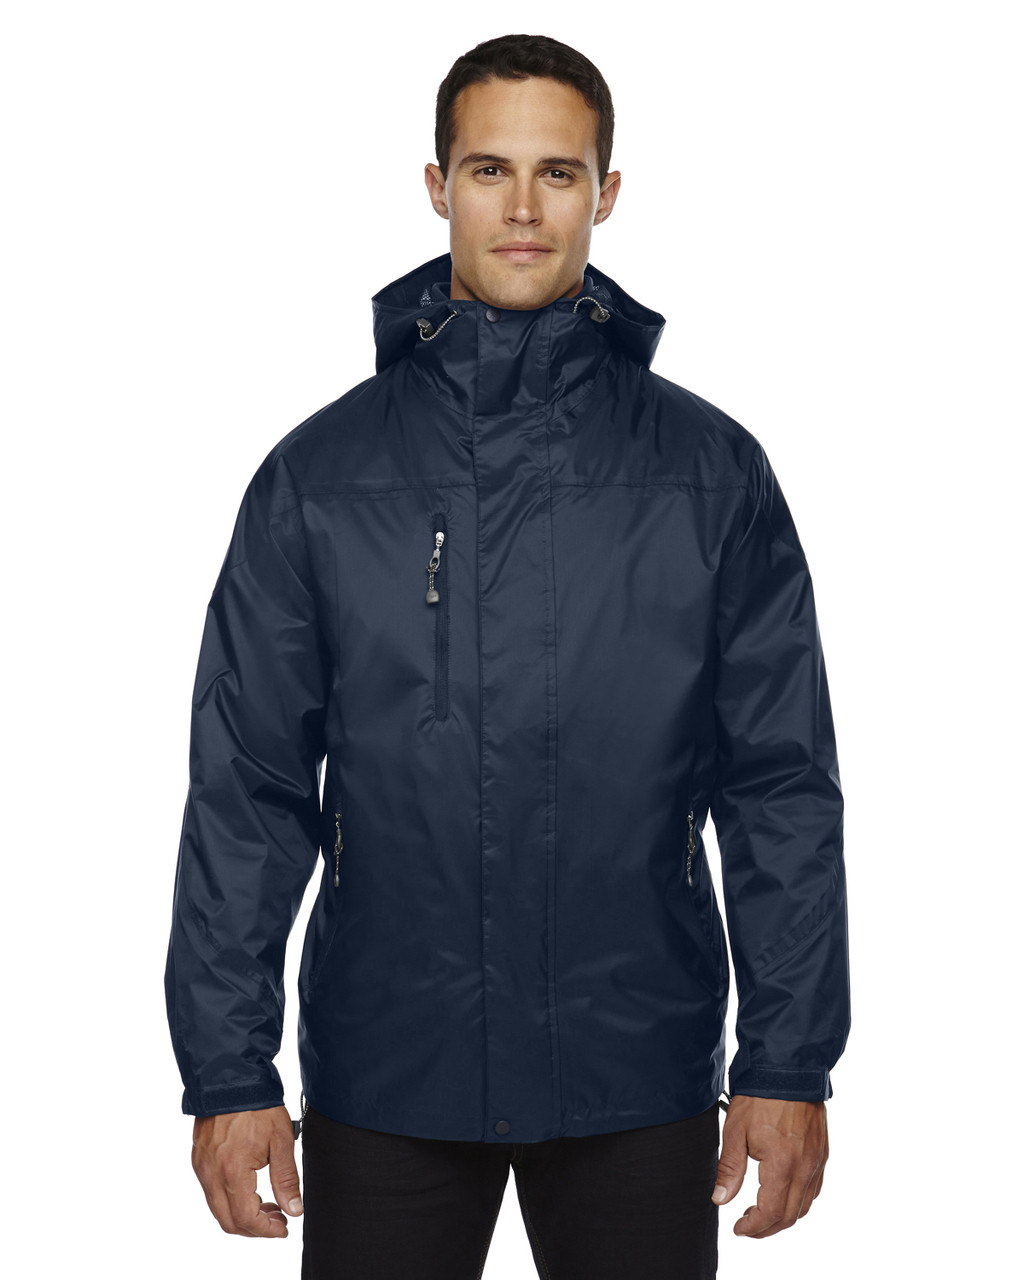 Midnight Navy - 88120 North End Men's 3-In-1 Techno Performance Seam-Sealed Hooded Jacket   Blankclothing.ca